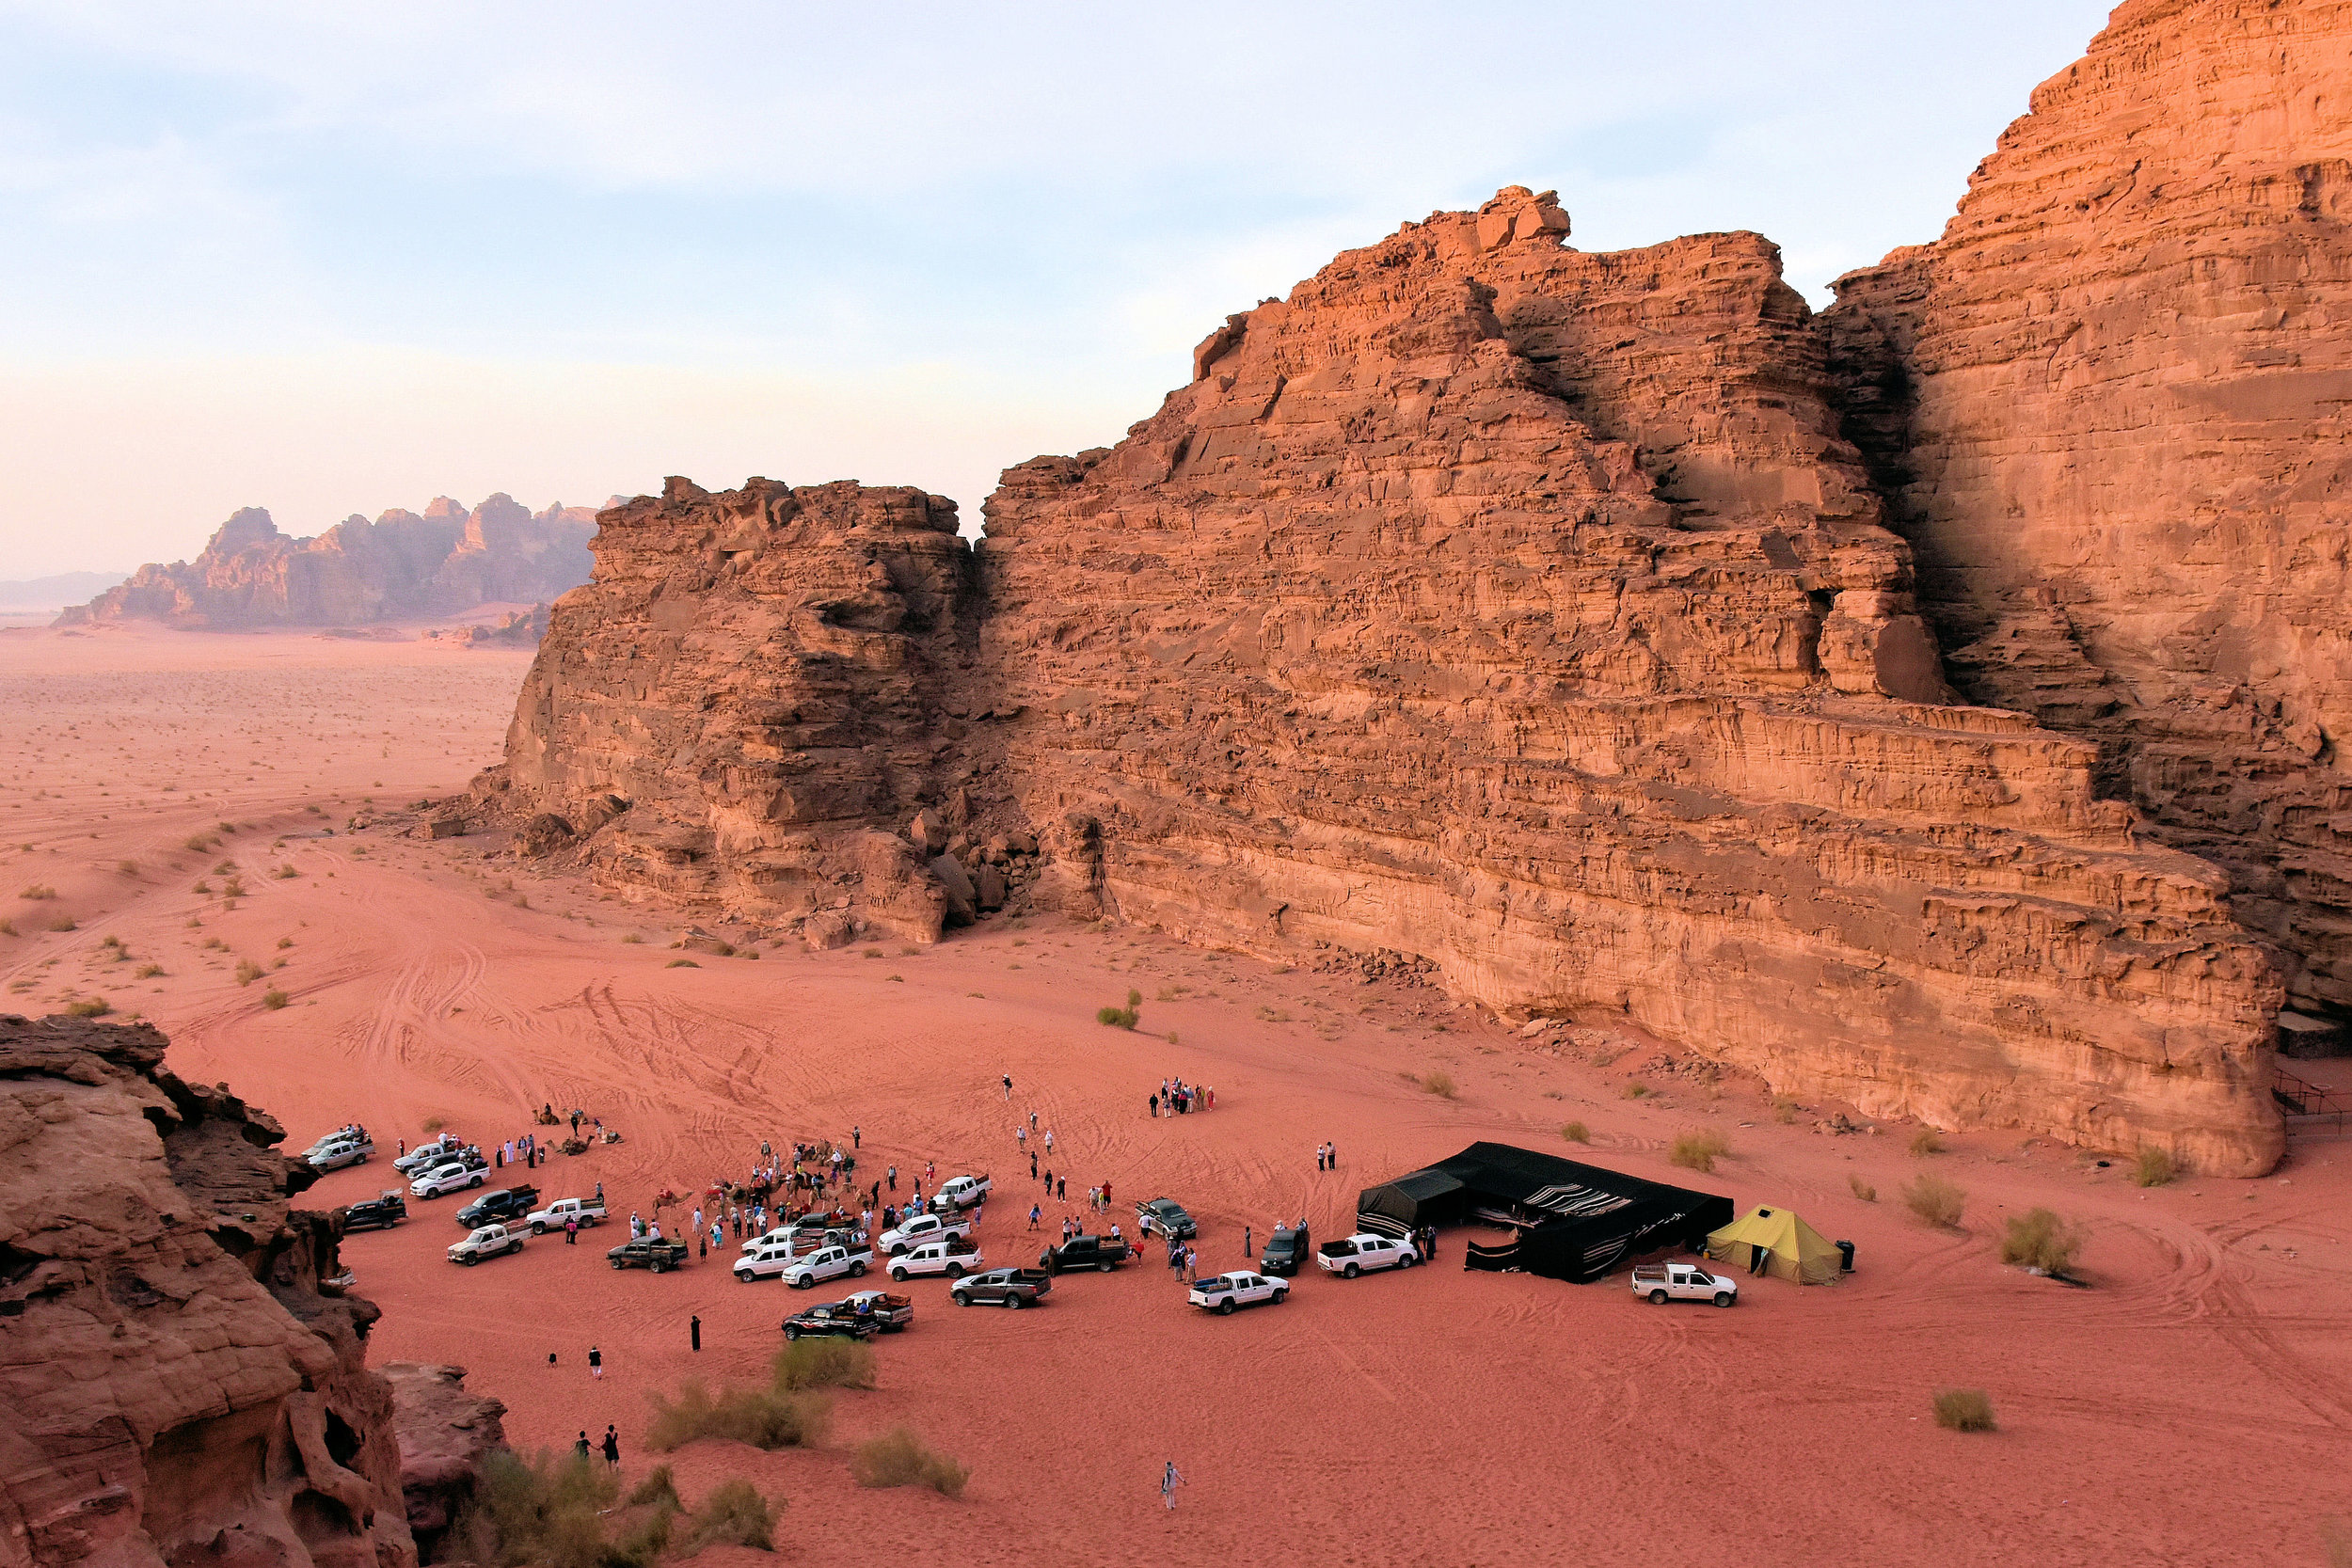 A four-wheel drive excursion at Wadi Rum is one of the most popular tourist activities in the desert. Not very peaceful, but incredibly scenic - especially at sunset.